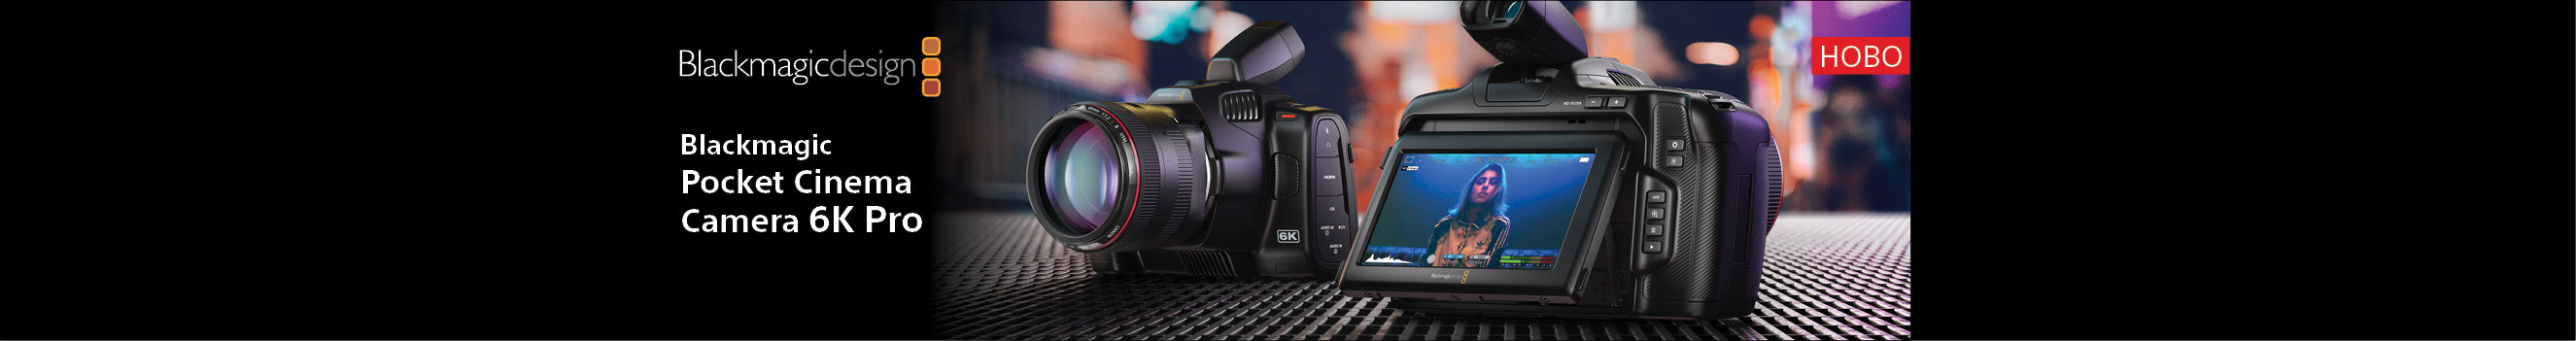 Новата кино камера Blackmagic Design Pocket Cinema Camera 6K Pro в магазини ФотоСинтезис